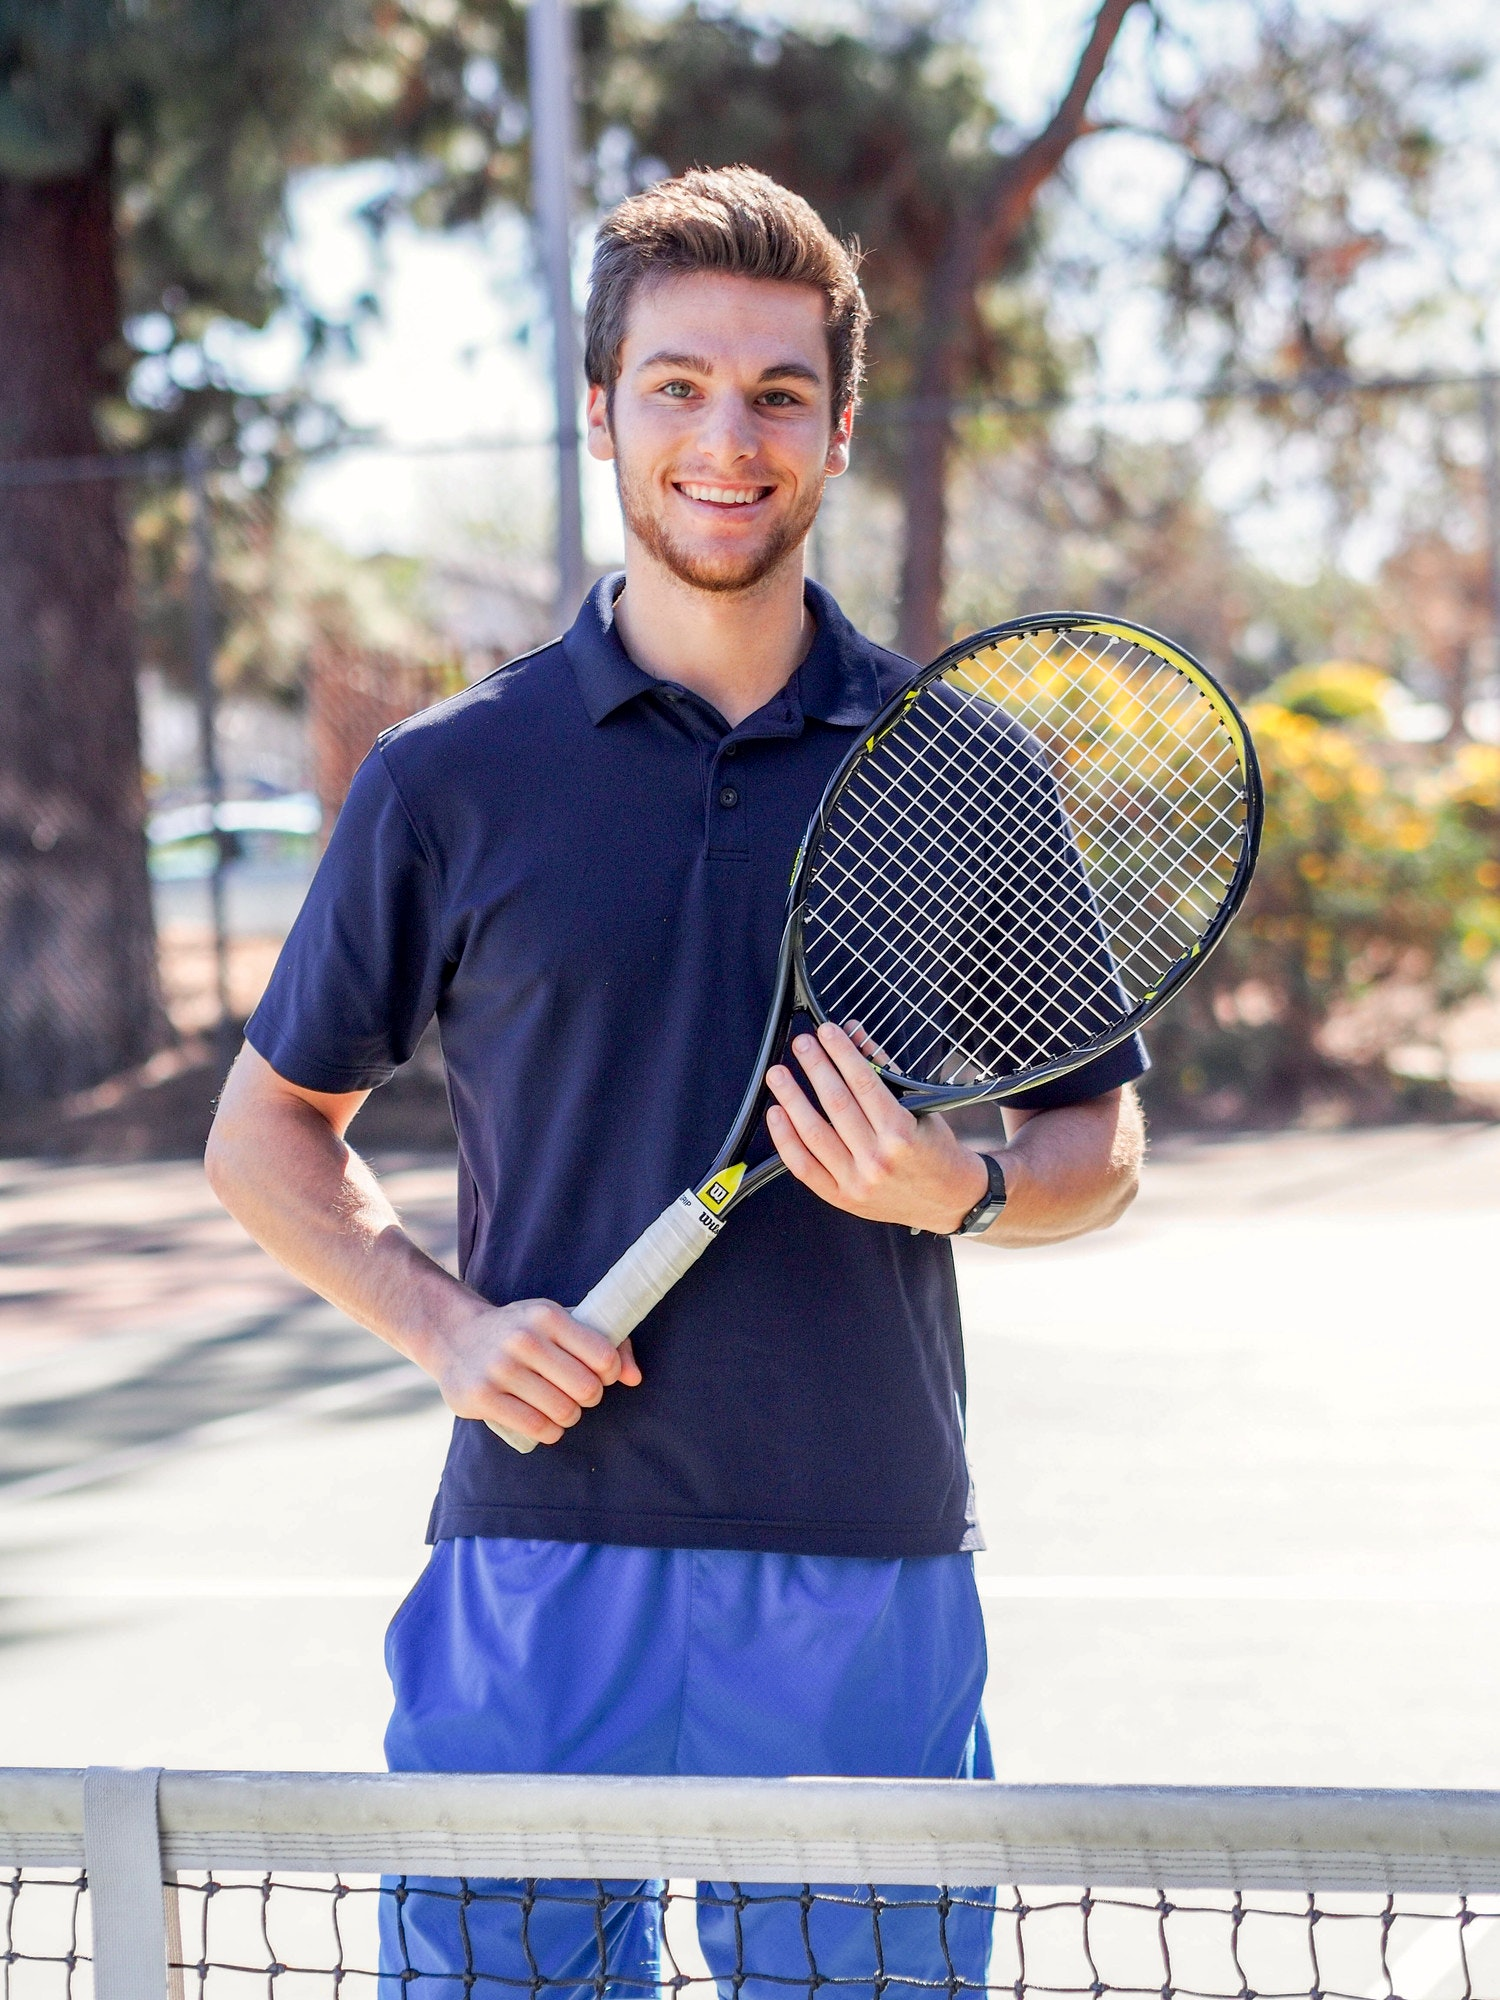 Brandon S. teaches tennis lessons in Sunnyvale, CA